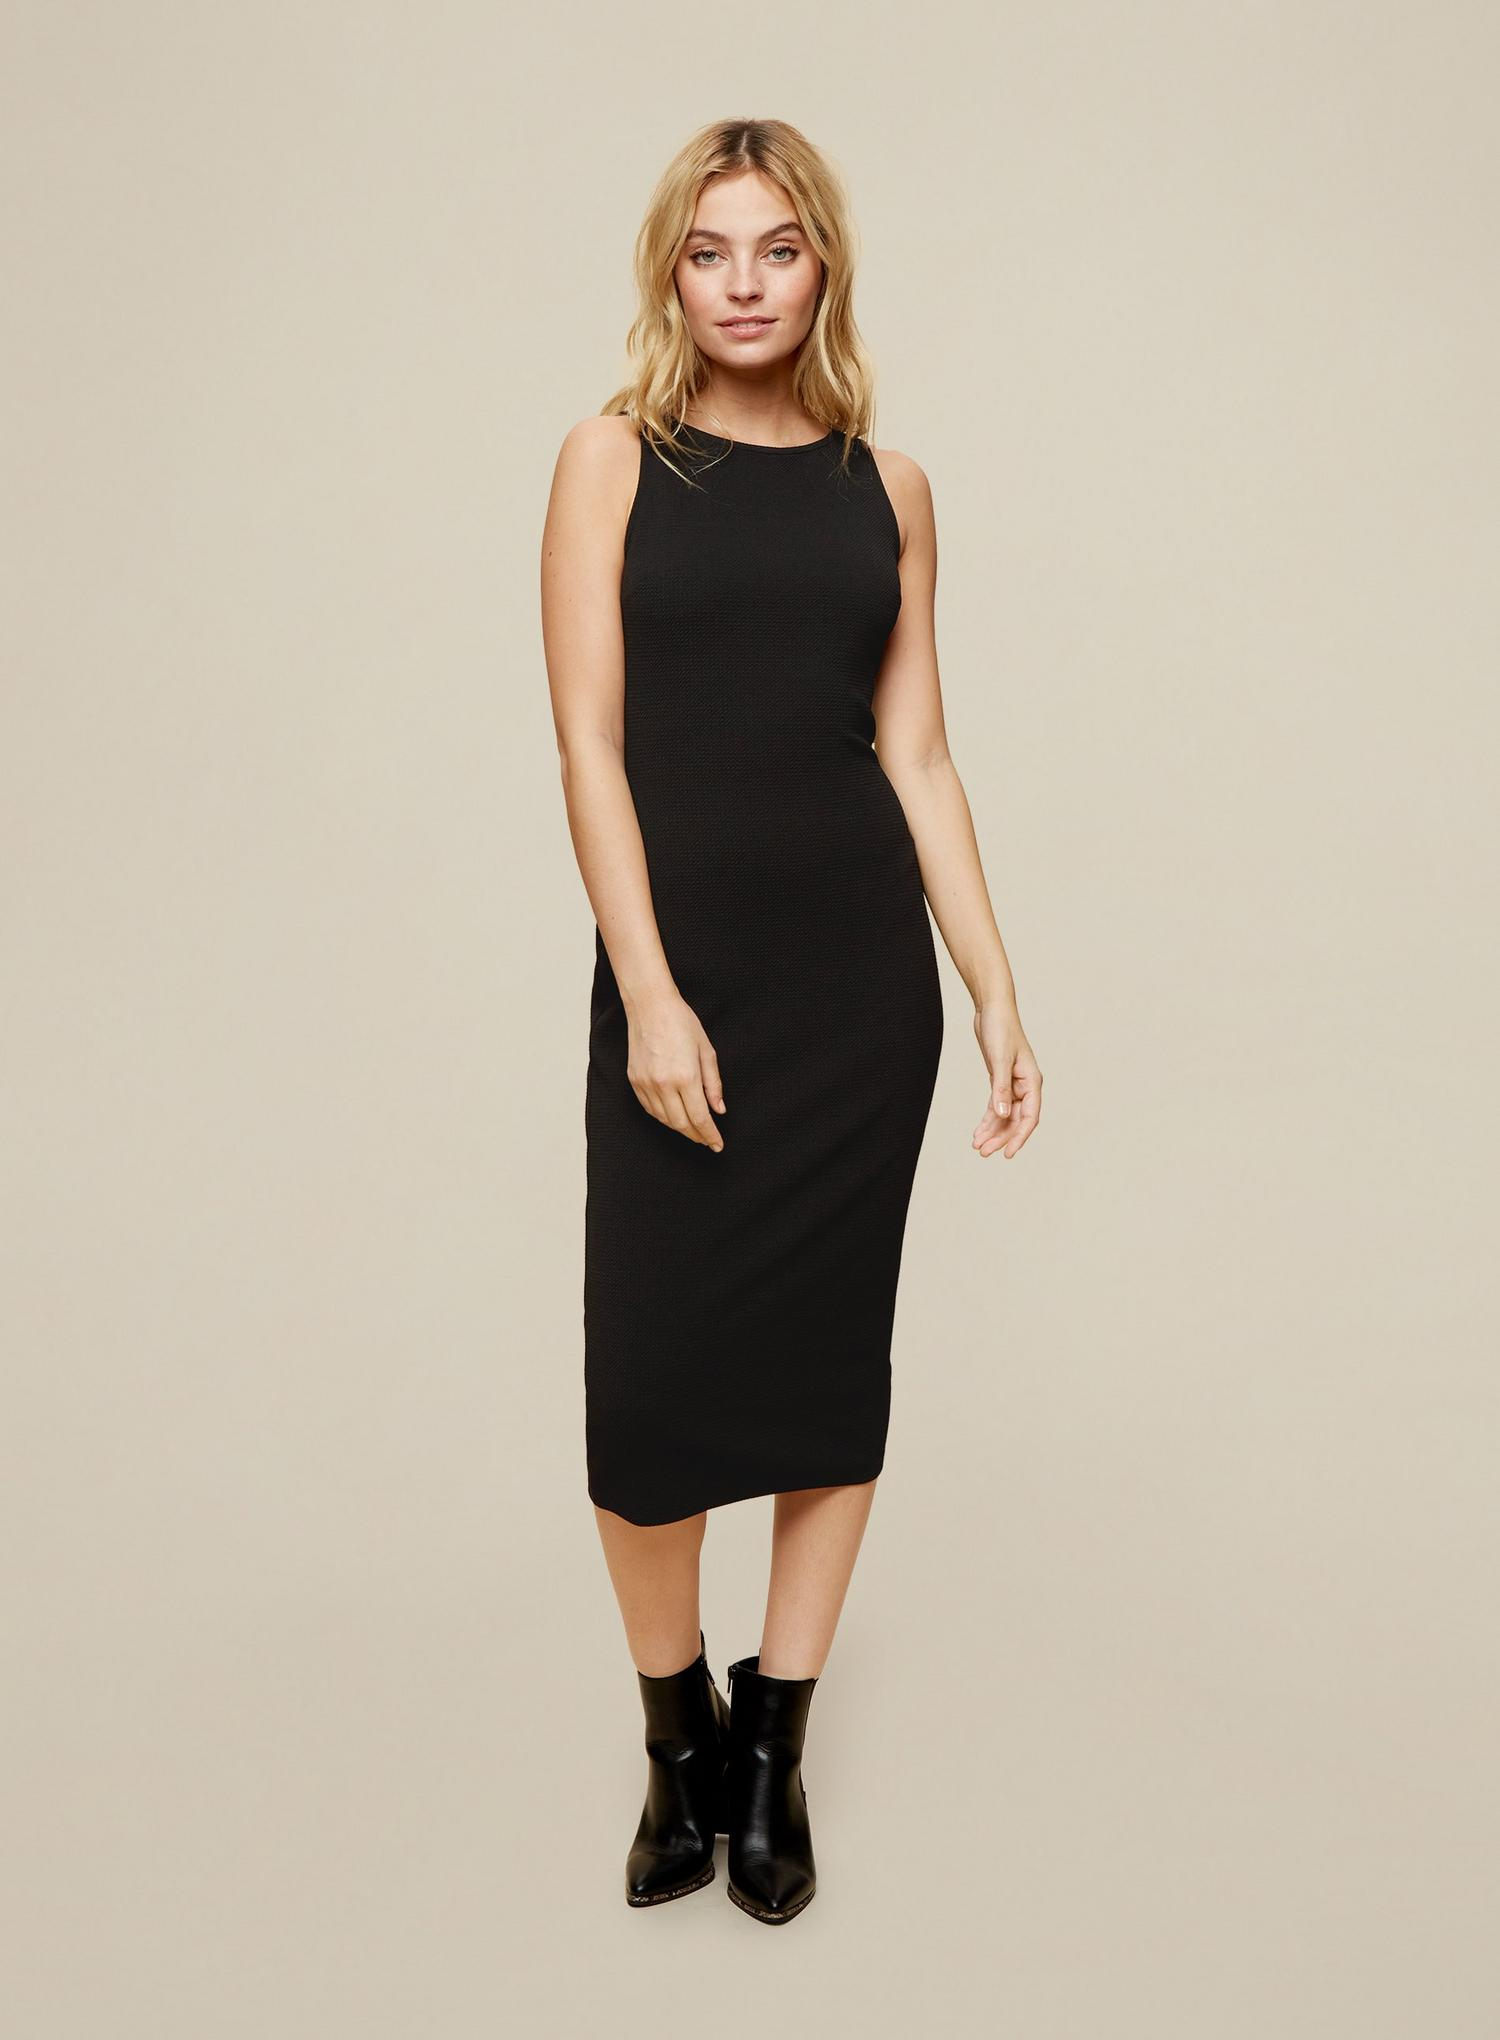 105 Petites Black Bodycon Midi Dress image number 2